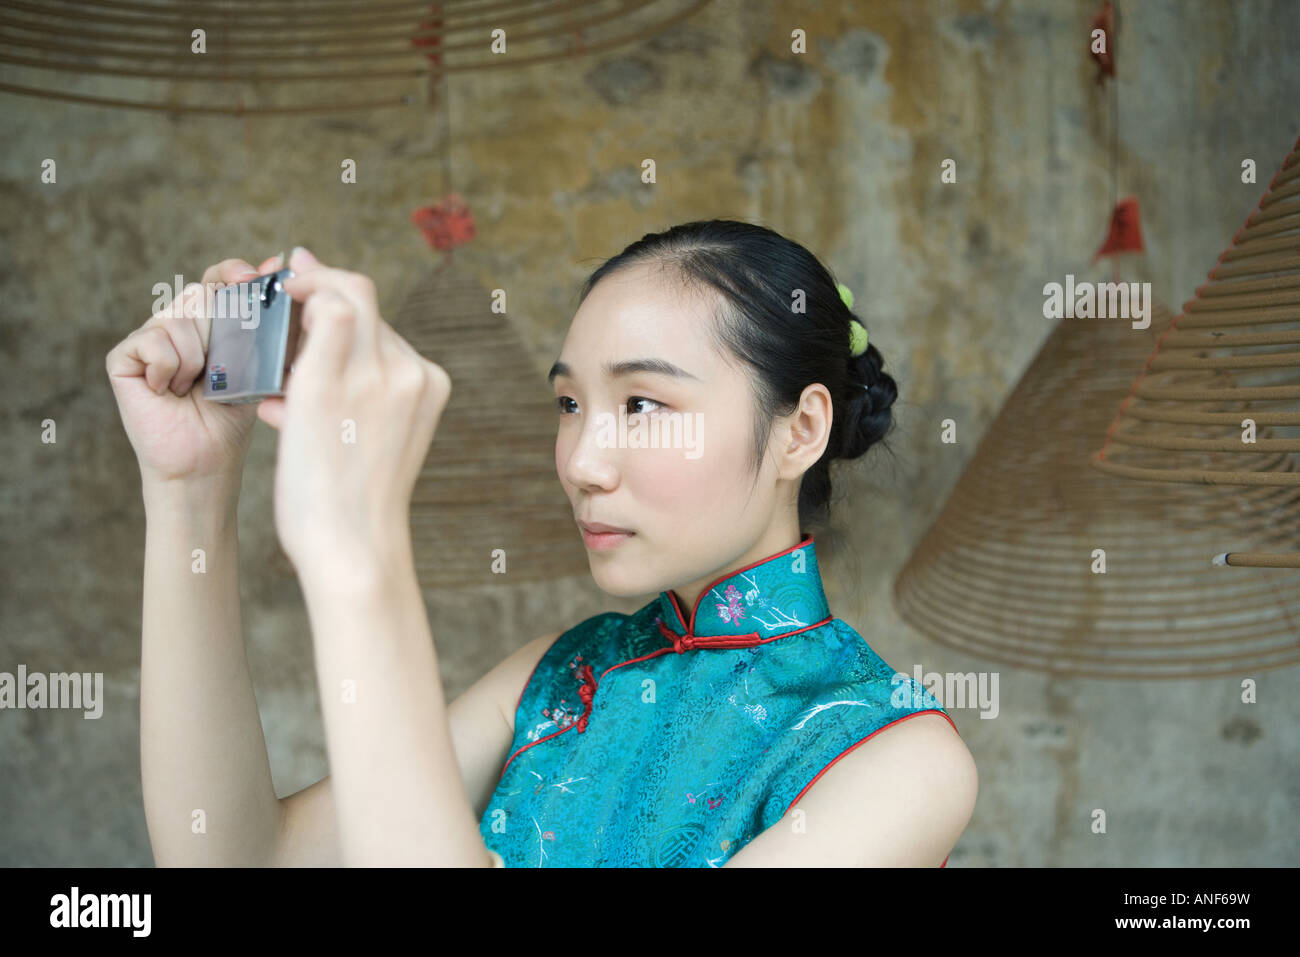 Young woman dressed in traditional Chinese clothing taking photo with digital camera - Stock Image